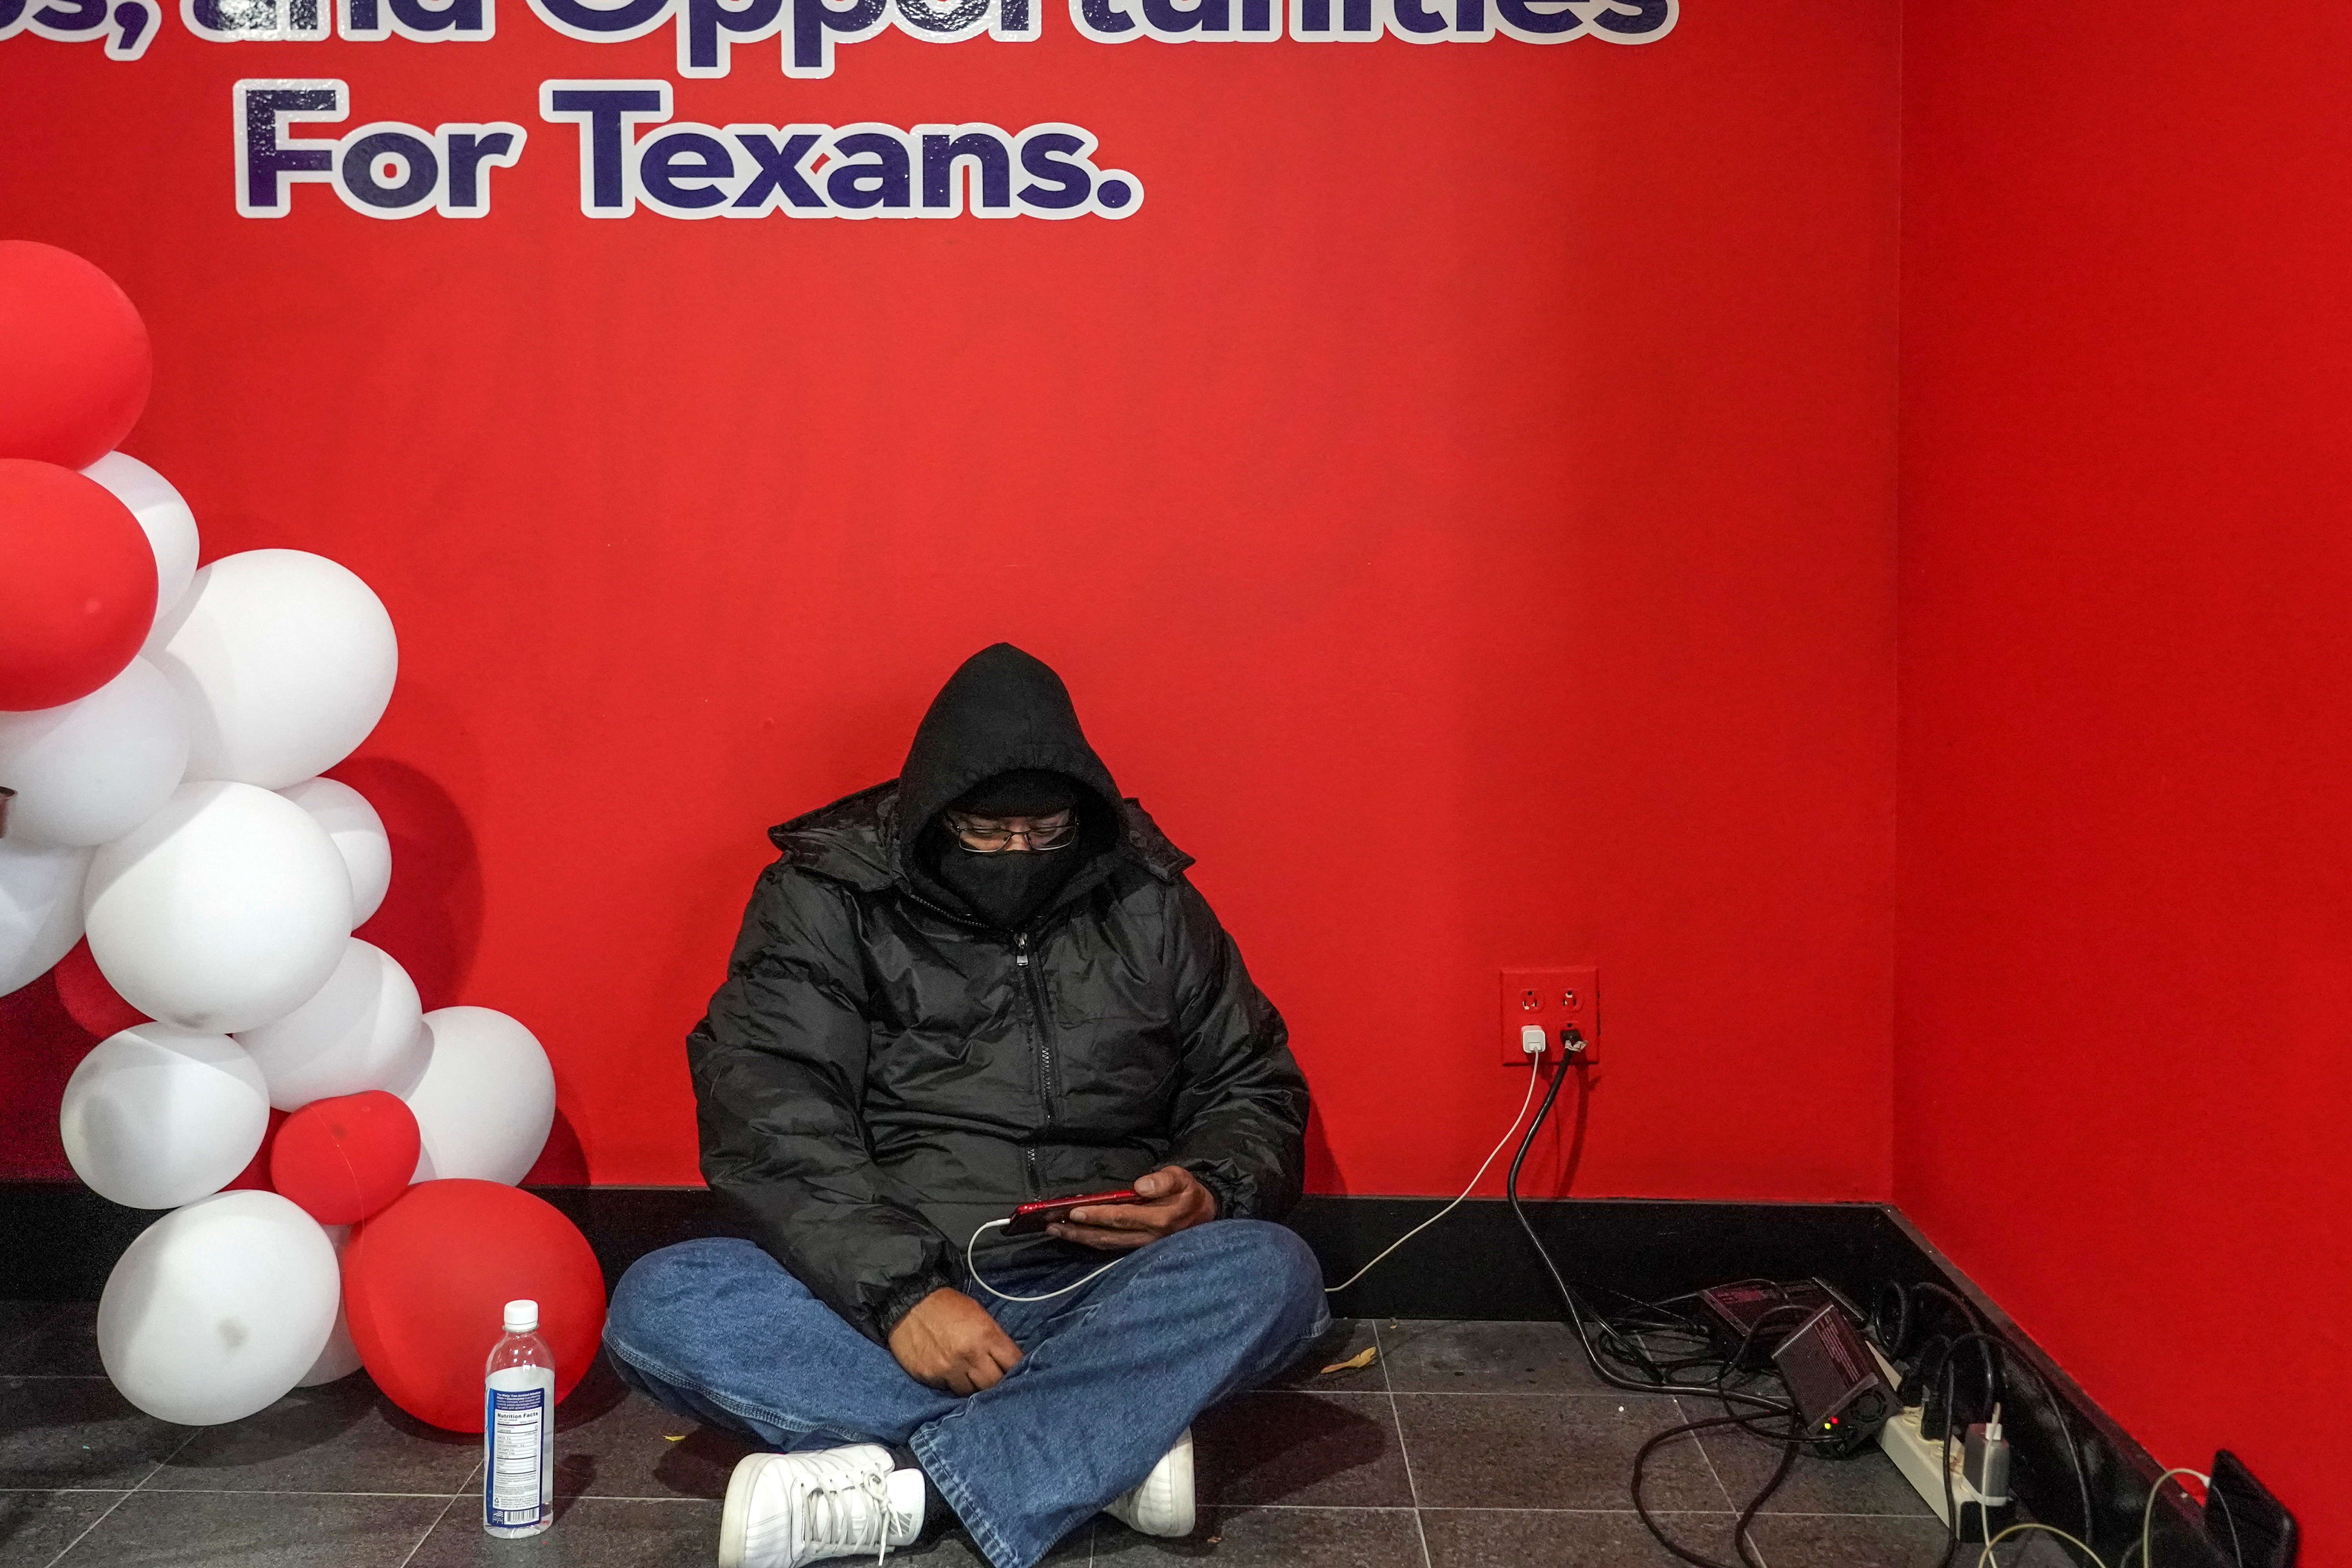 A person charges his smartphone while taking a shelter at Gallery Furniture store which opened its door and transformed into a warming station after winter weather caused electricity blackouts in Houston, Texas, U.S. February 17, 2021.  REUTERS/Go Nakamura